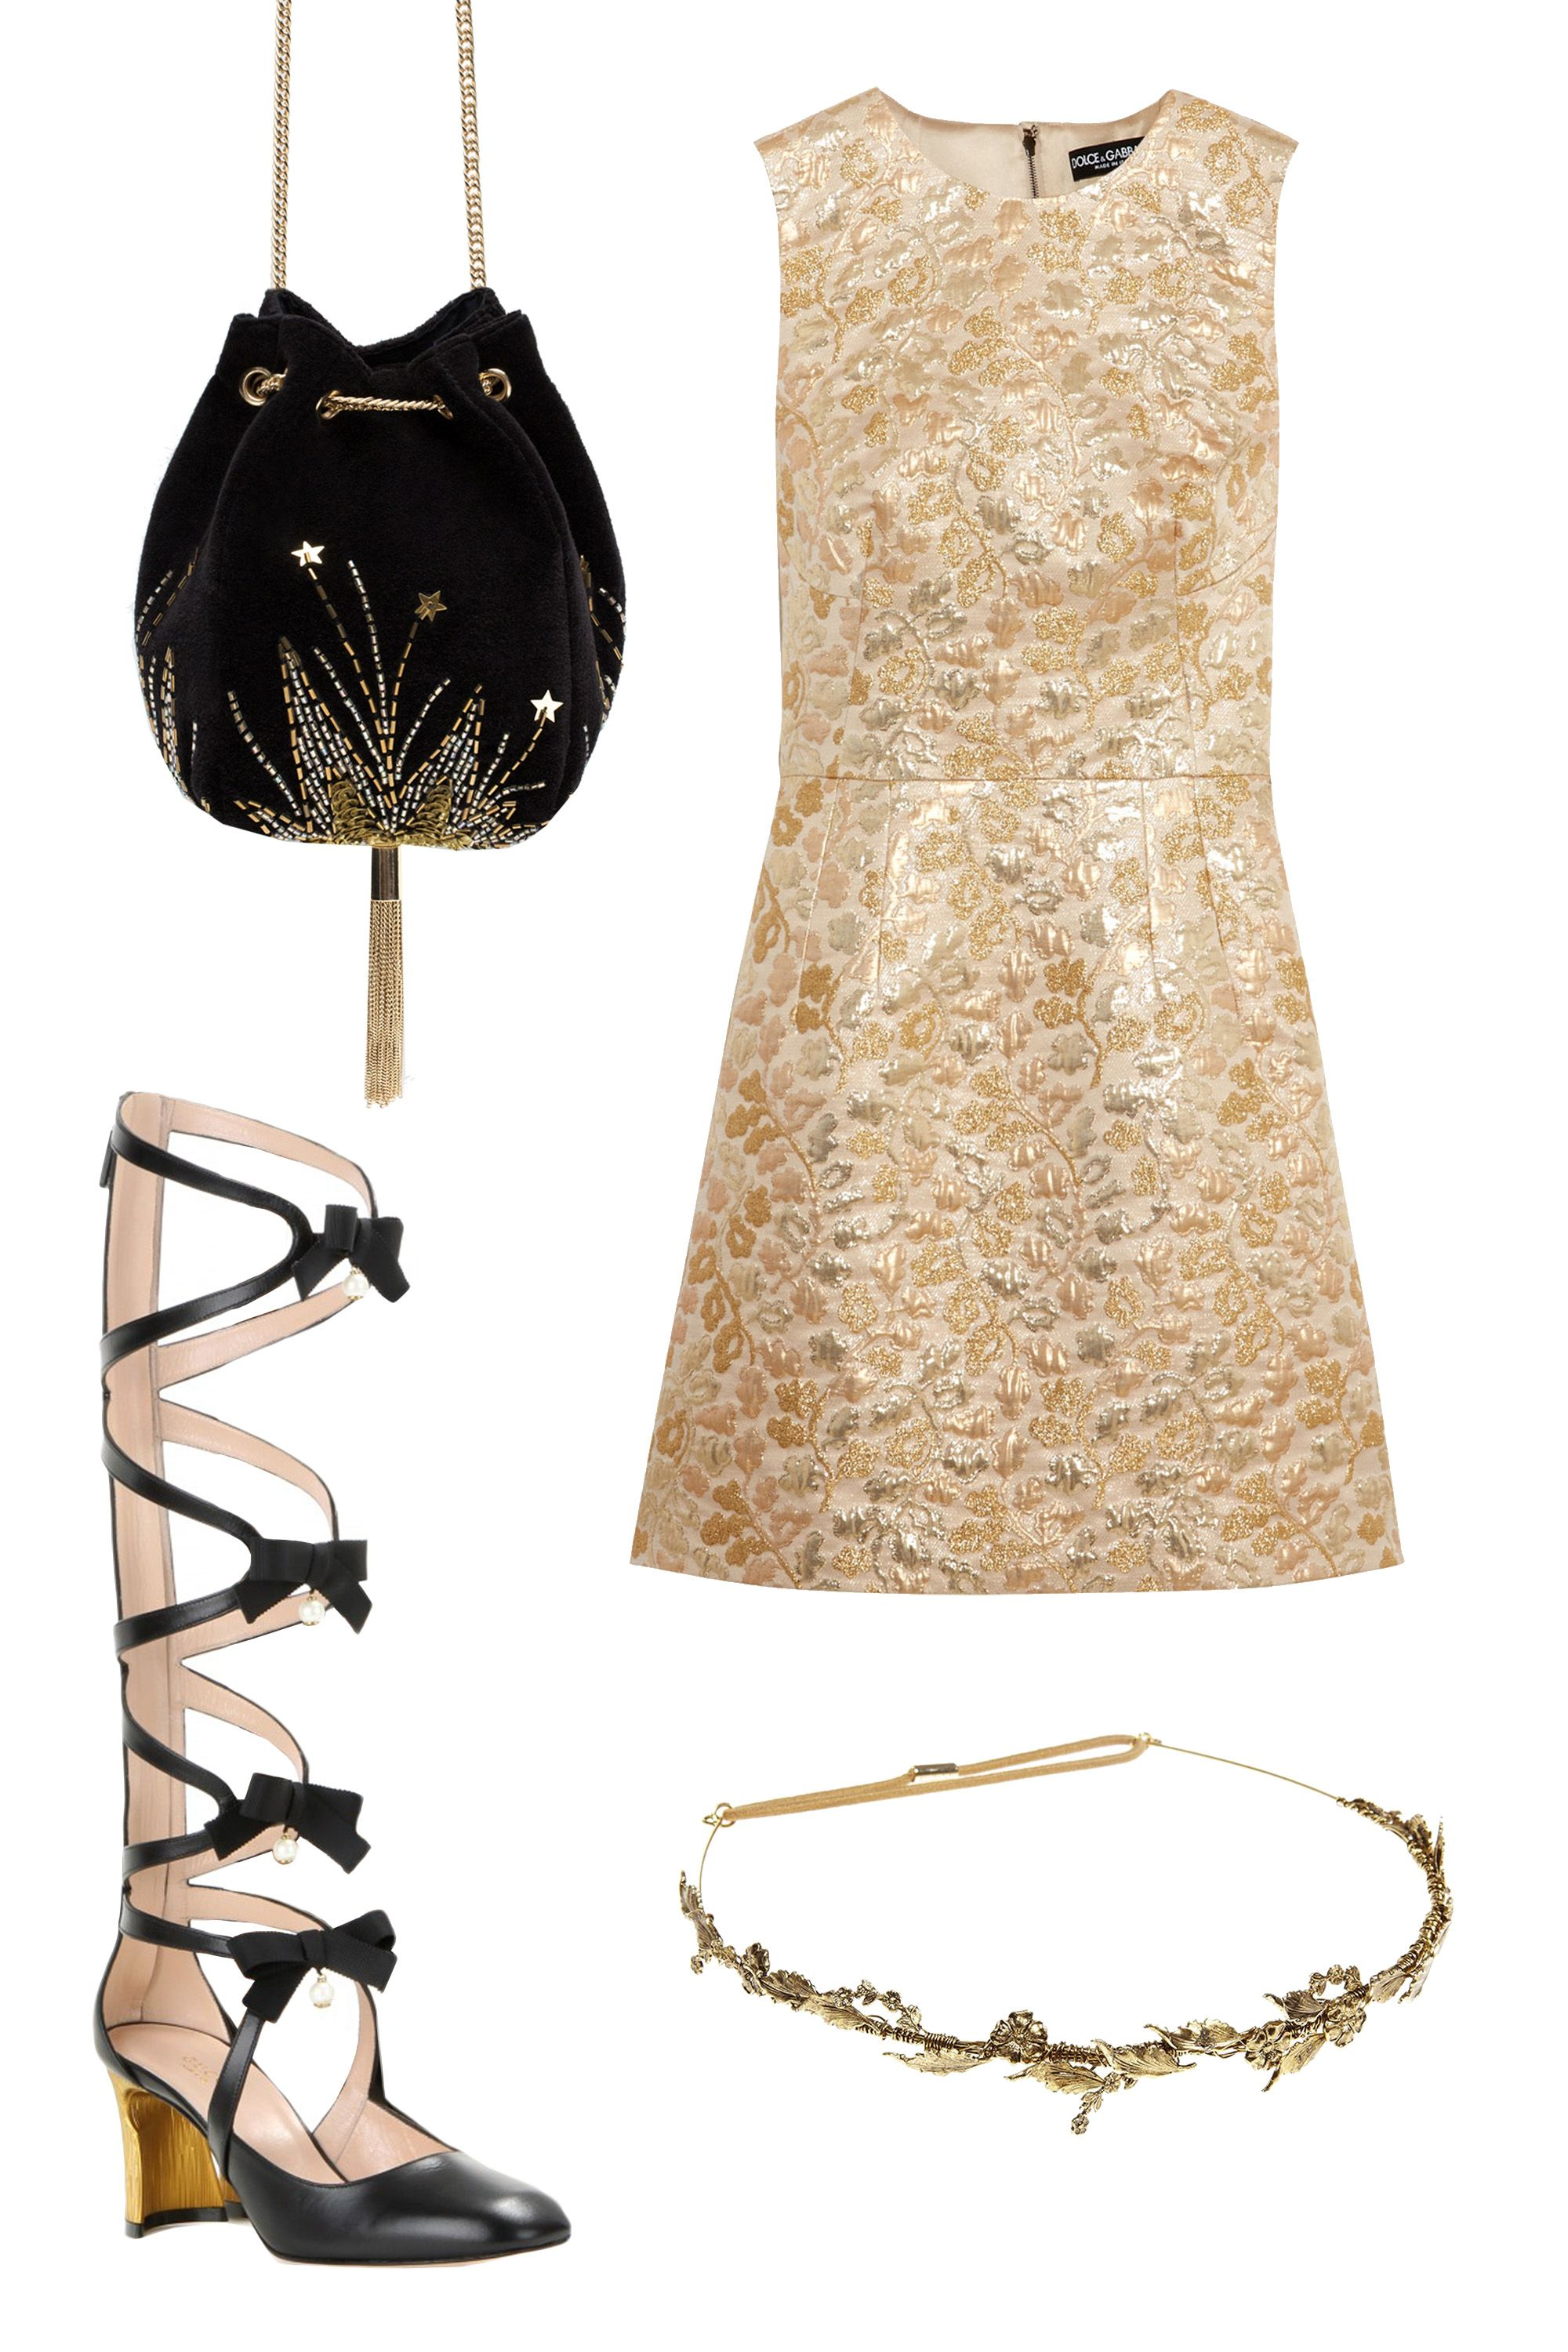 "<p>Now this is where you should experiment, and we're not just talking about drinking those questionable cocktails your BFF just mixed in the corner. Honestly, there aren't many occasions to wear a laurel leaf tiara, but you know your friends will appreciate it. </p><p>Dolce & Gabbana Metallic Brocade Mini Dress, $2,295&#x3B; <u><a href=""http://www.net-a-porter.com/us/en/product/644449/dolce___gabbana/metallic-brocade-mini-dress"" target=""_blank"">net-a-porter.com</a></u><br></p><p><u><a href=""http://www.net-a-porter.com/us/en/product/644449/dolce___gabbana/metallic-brocade-mini-dress""></a></u>Gucci Embellished Cut-Out Boots, $2,300&#x3B; <a href=""http://www.mytheresa.com/en-us/embellished-cut-out-boots.html?catref=category"" target=""_blank""><u>mytheresa.com</u></a></p><p>Zara Velvet Evening Bucket Bag, $50&#x3B; <a href=""http://www.zara.com/us/en/woman/bags/view-all/velvet-evening-bucket-bag-c734144p3141014.html"" target=""_blank""><u>zara.com</u></a></p><p>Jennifer Behr Delicate Laurel Leaf Bandeaux, $298&#x3B; <u><a href=""http://www.jenniferbehr.com/catalog/product/view/id/4315/s/delicate-laurel-leaf-bandeaux/"" target=""_blank"">jenniferbehr.com</a></u></p>"